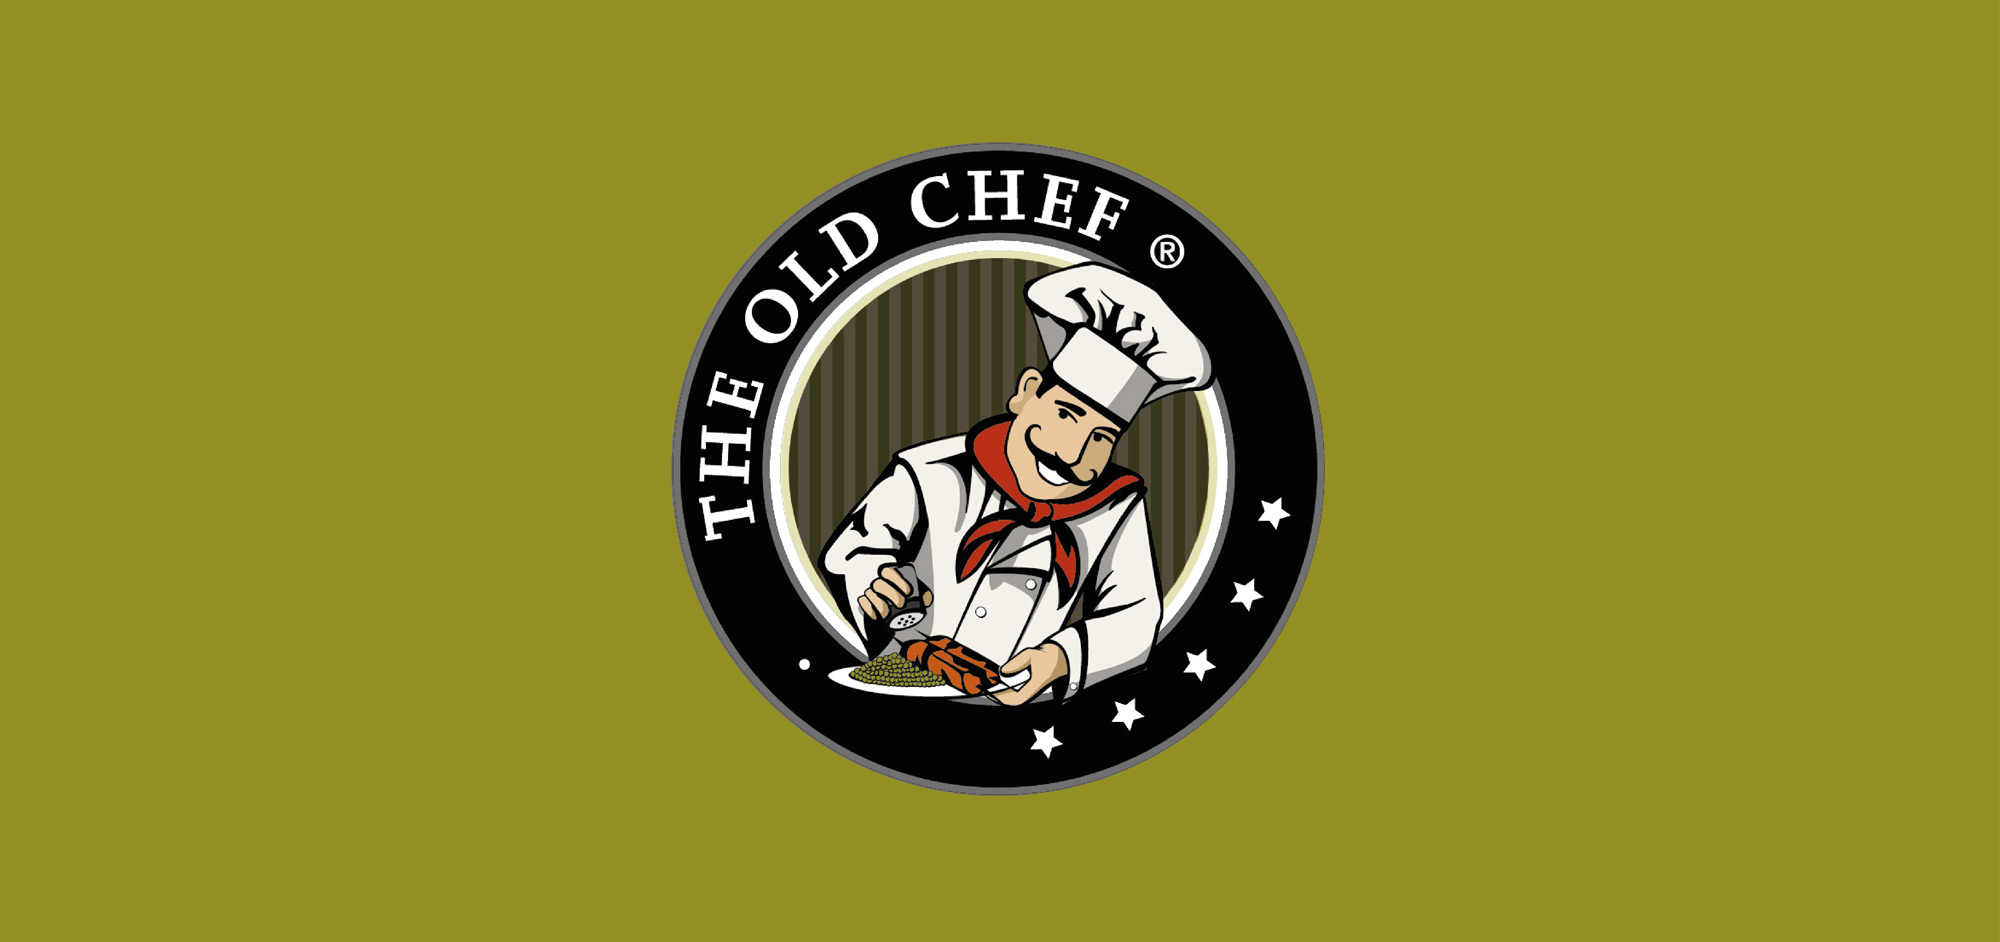 The Old Chef